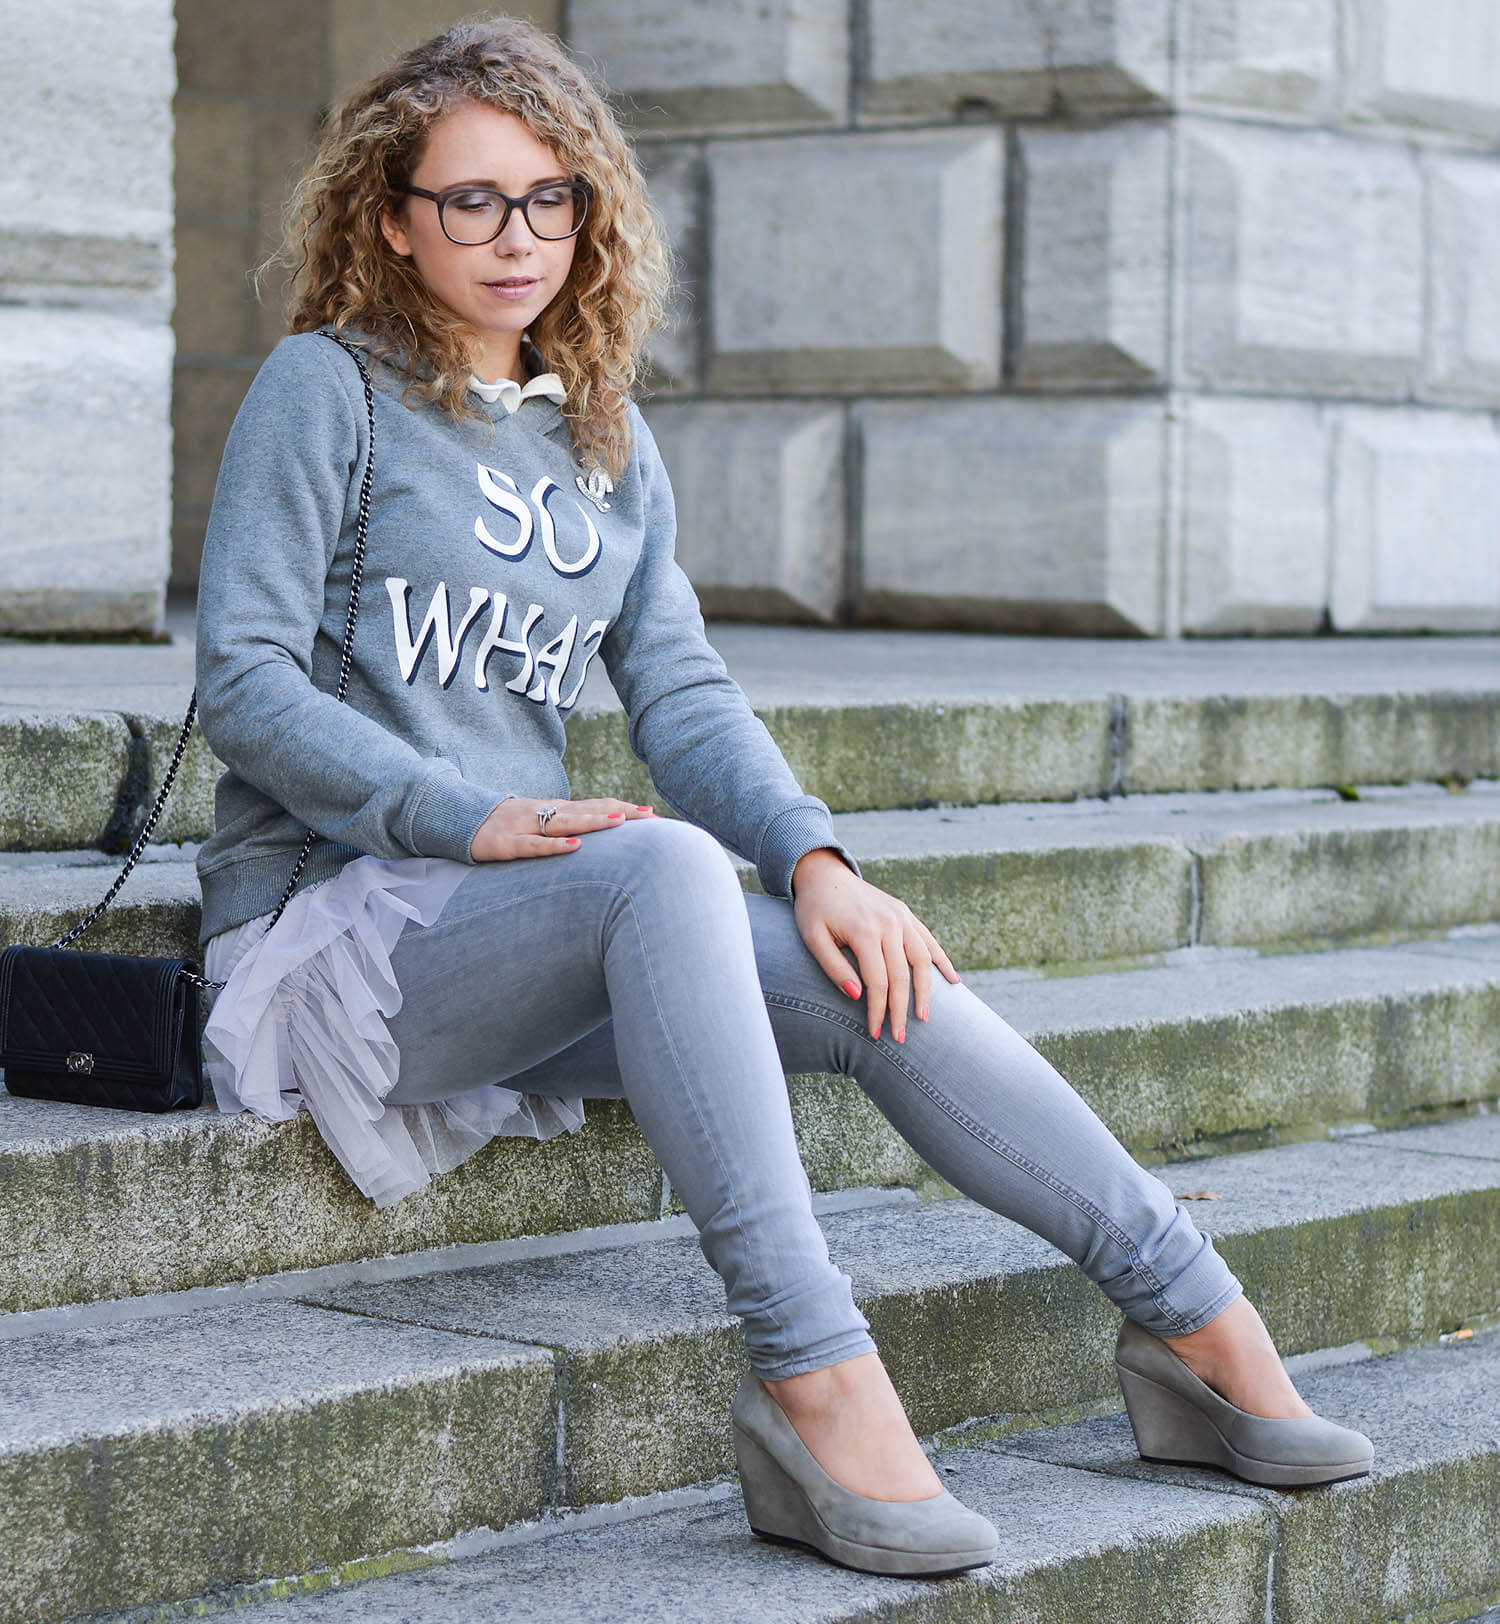 Kationette-fashionblog-nrw-Outfit-Allgrey-with-Carrie-Bradshaw-SATC-Tulle-Skirt-Statement-Hoodie-Chanel-Wedges